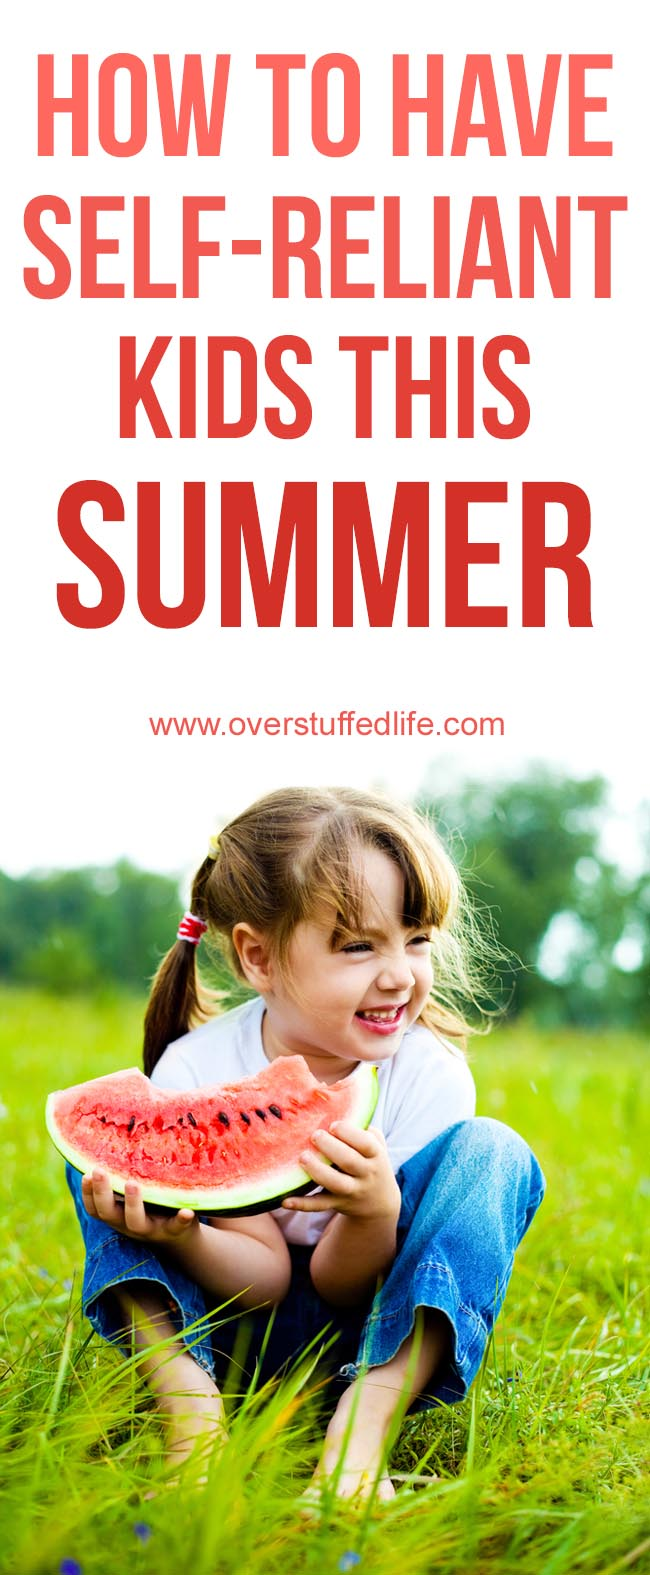 Summer activities for kids that will help encourage self-reliance and productivity